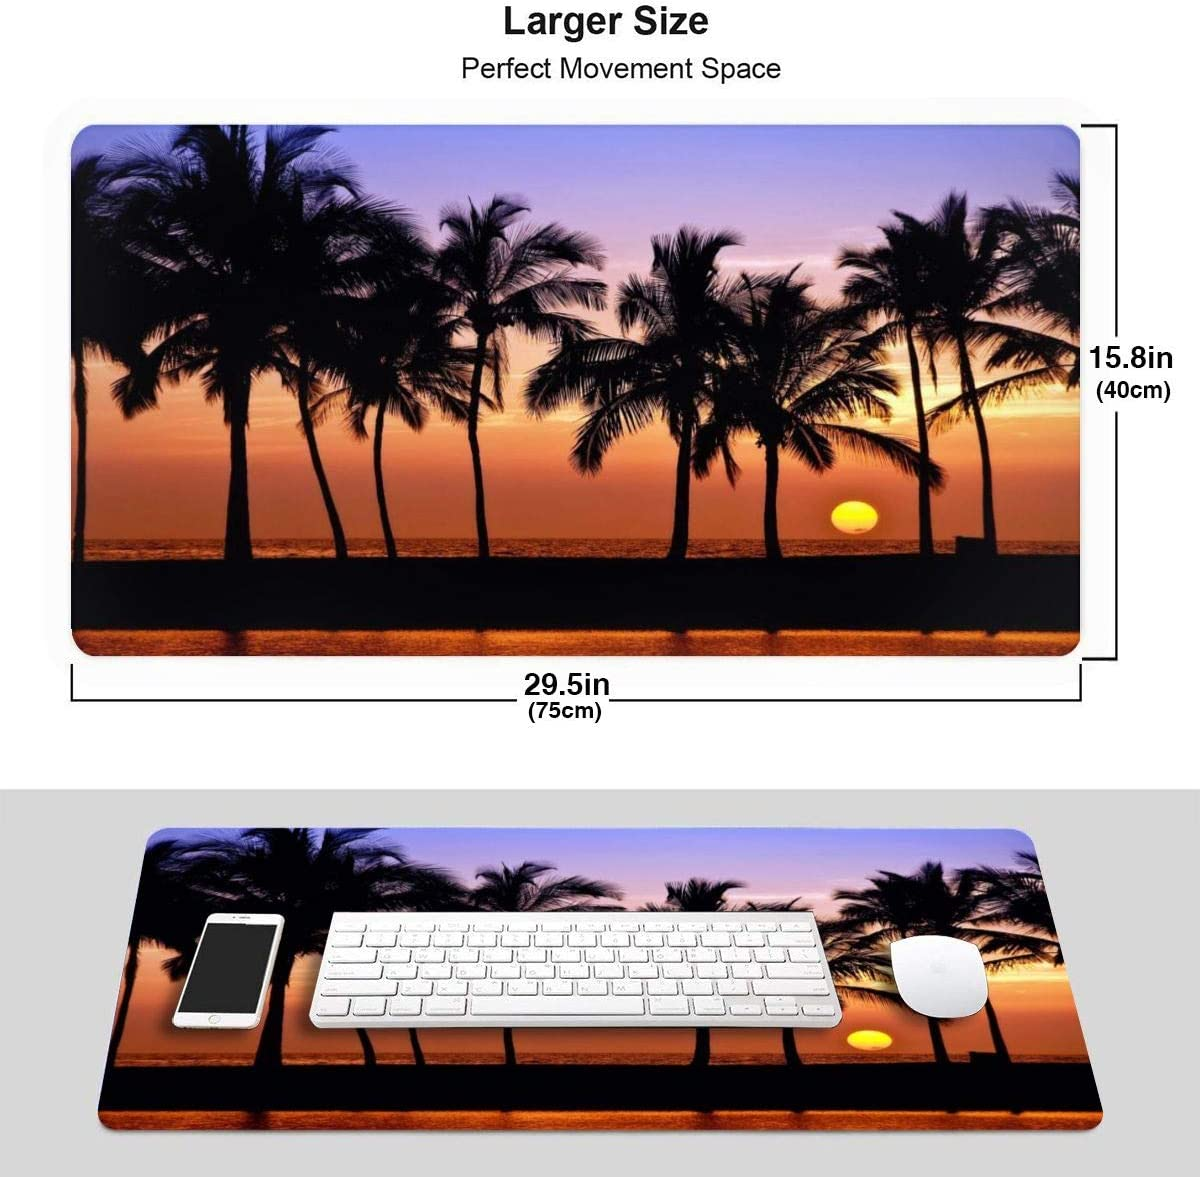 Sunset Pacific Lanikai Hawaii Colorful Sky Wavy Large Gaming Mouse Pad Extended Long Desk Pad 30x16 Mousepad Non-Slip Rubber Stitched Edges Keyboard Pad for Computers Laptop